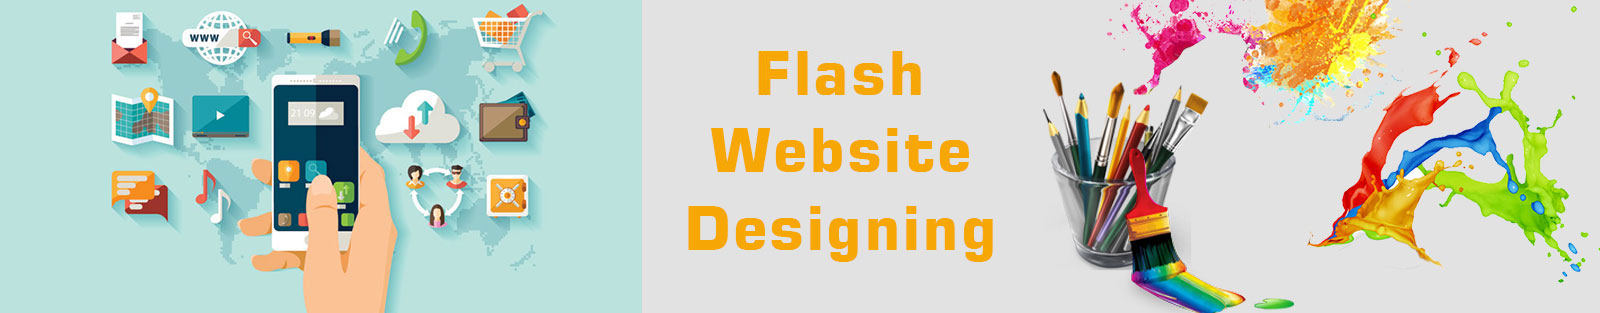 Flash Website Designing